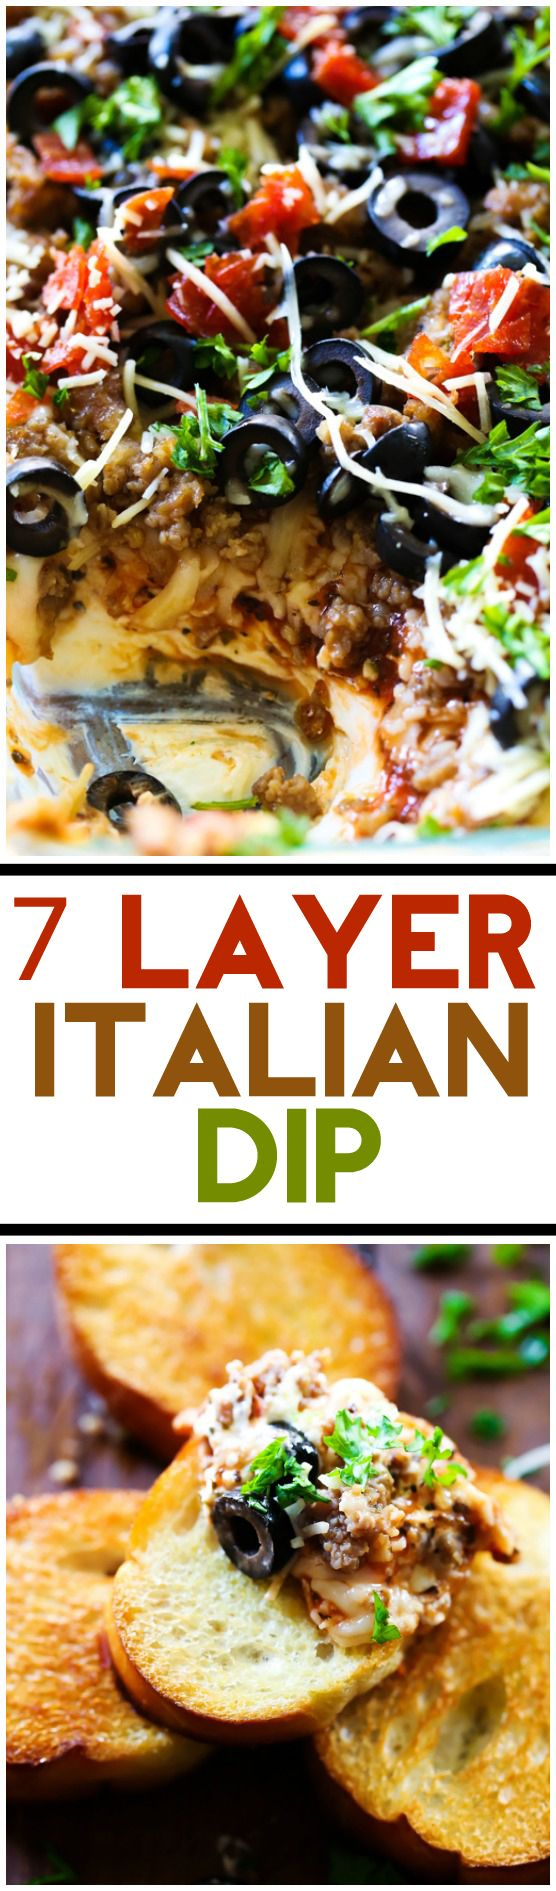 7 Layer Italian Dip… Seven Layers of Italian flavor and ingredient heaven! This will be one appetizer yo